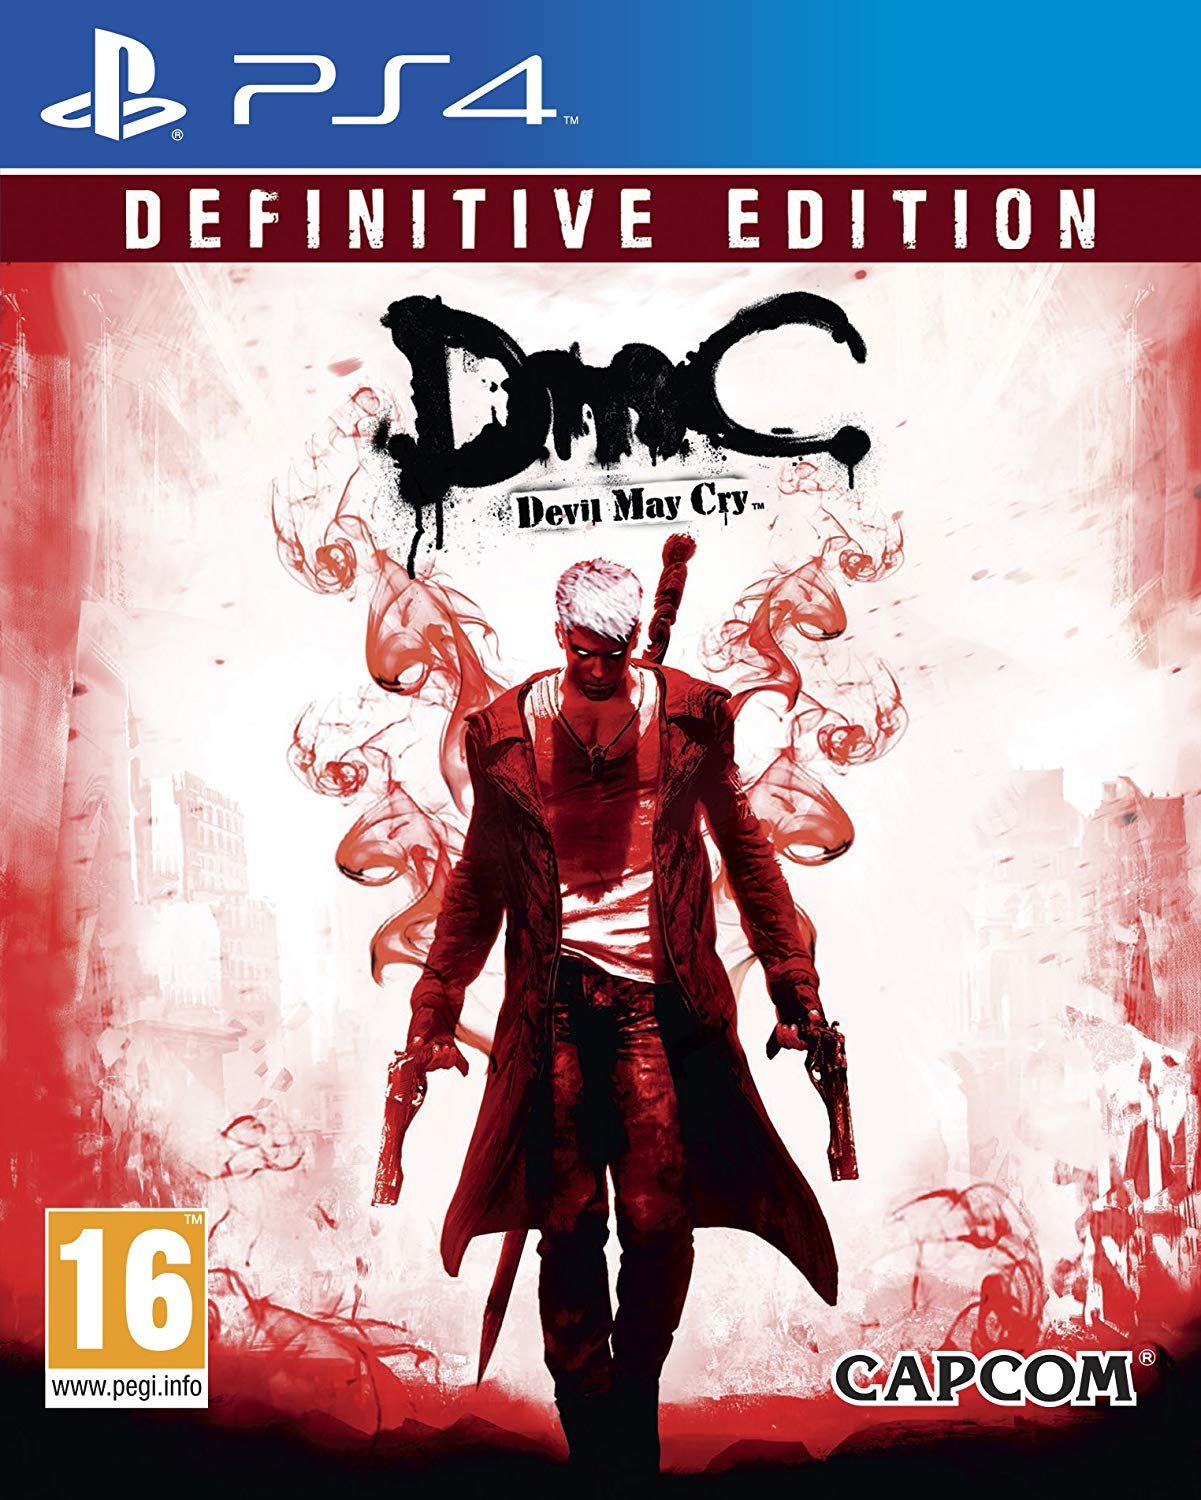 Devil May Cry: Definitive Edition PS4, PS4, DVDMEGASTORE, DVDMEGASTORE